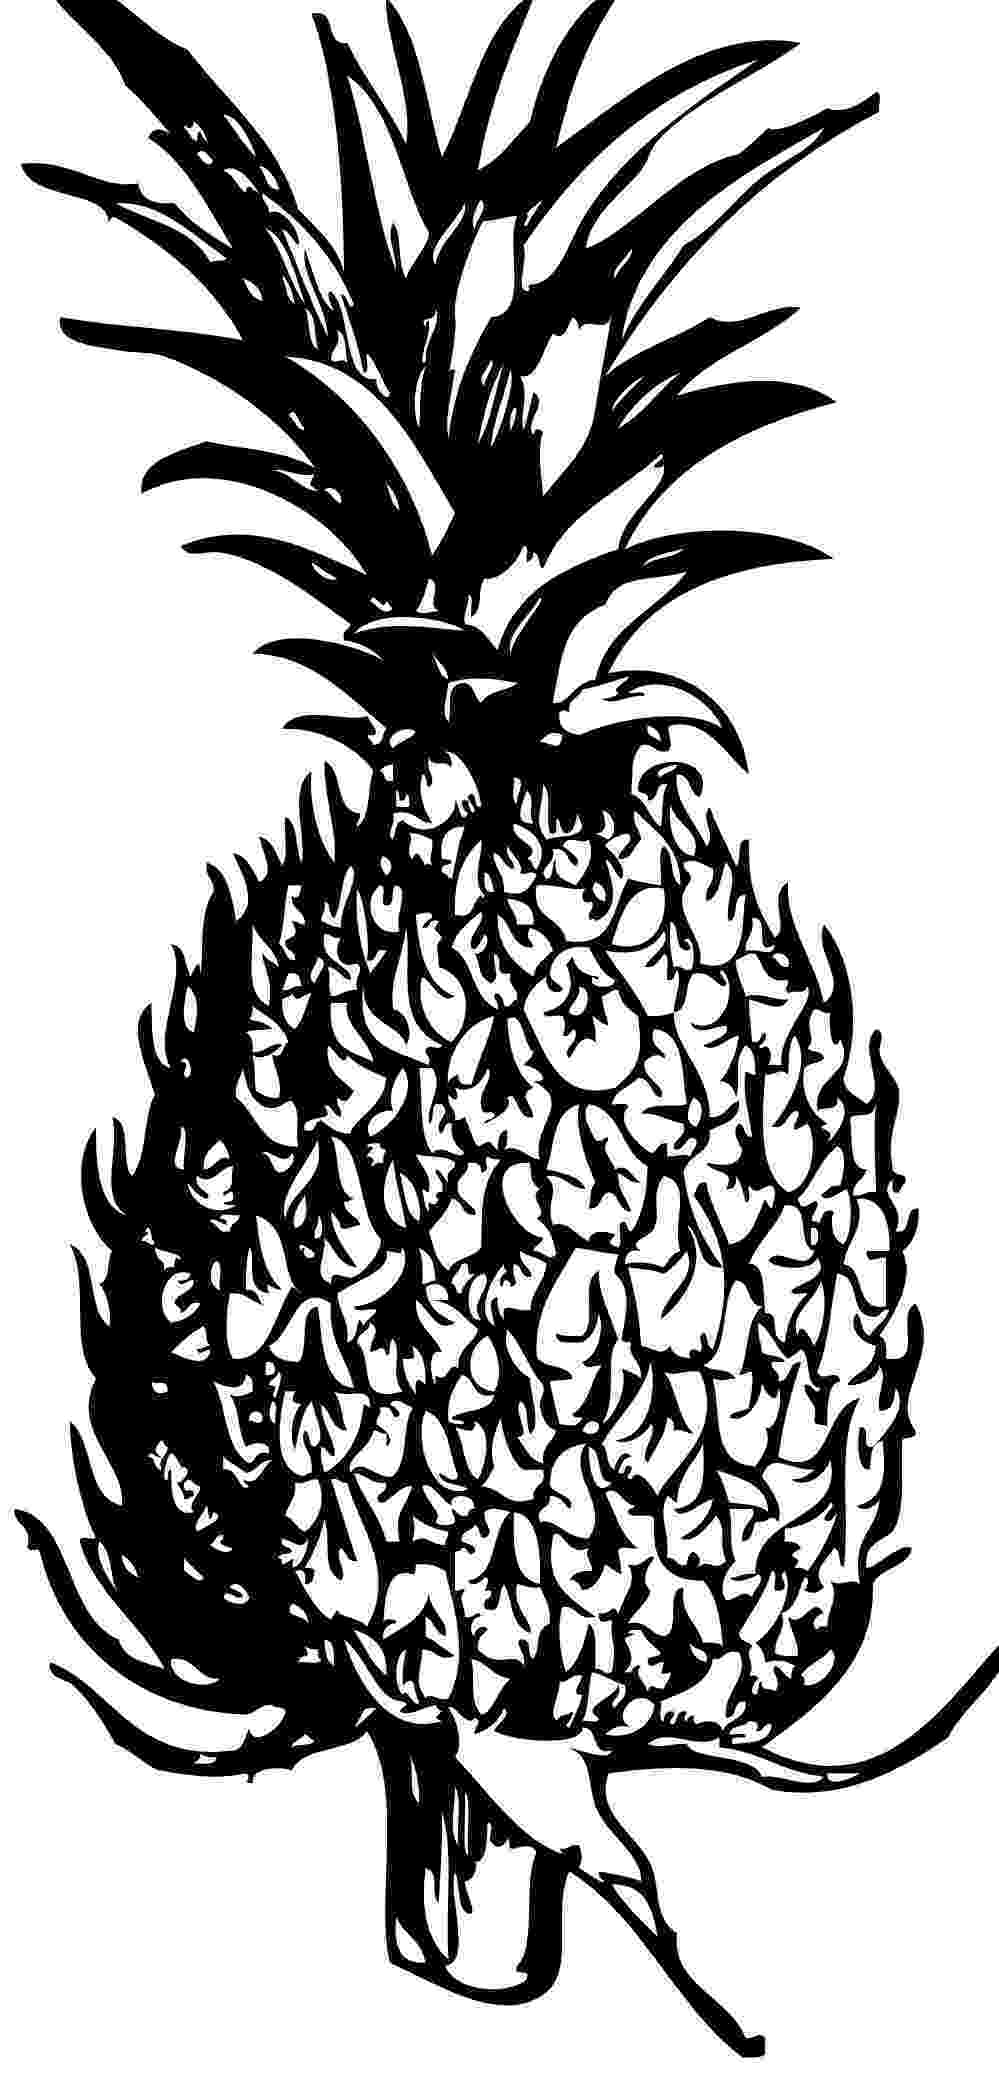 pineapple picture to color printable pineapple coloring pages for kids cool2bkids color to picture pineapple